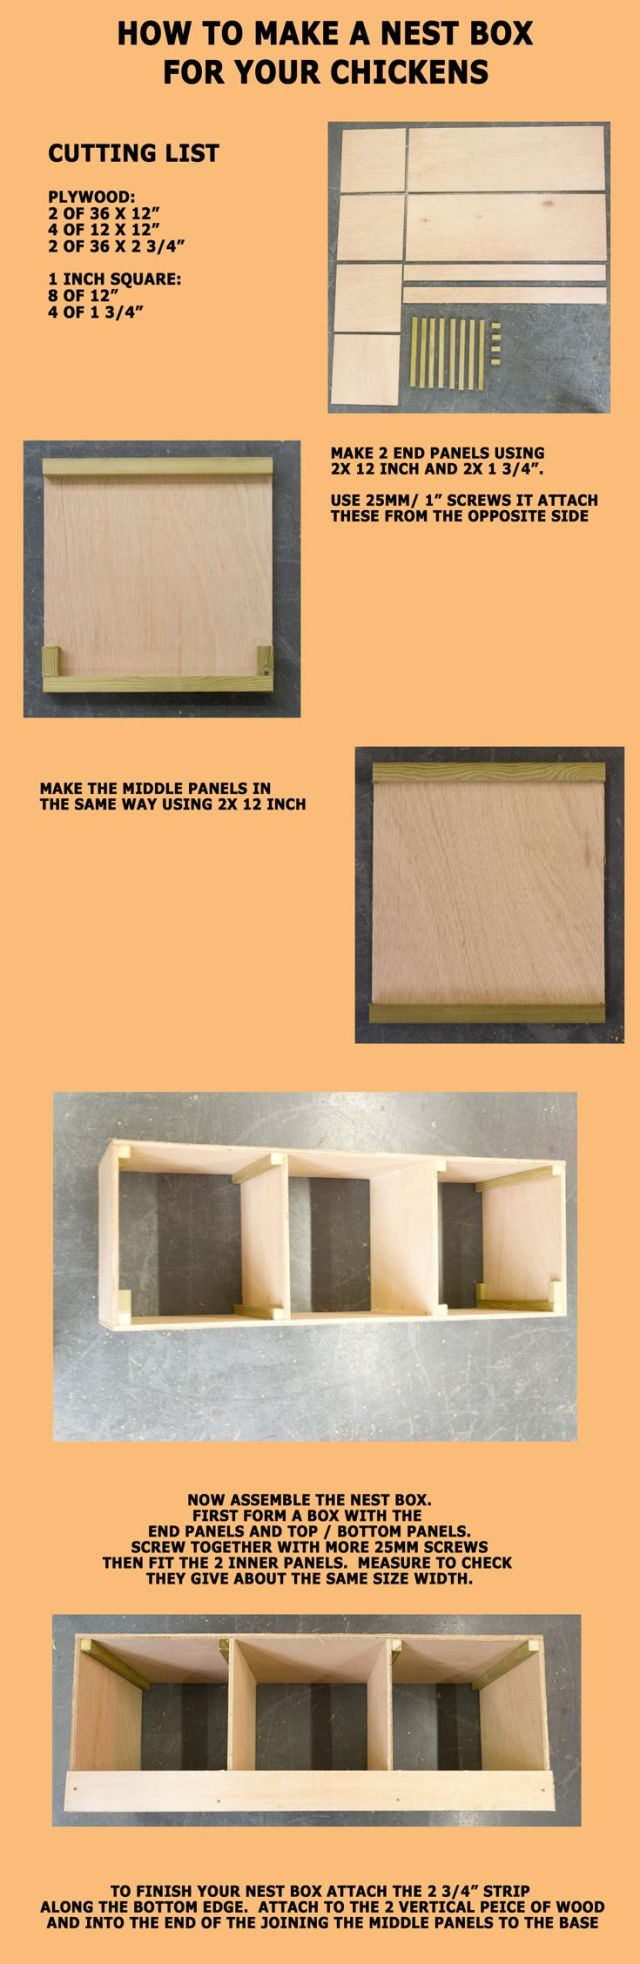 How to make a nest box for your chickens